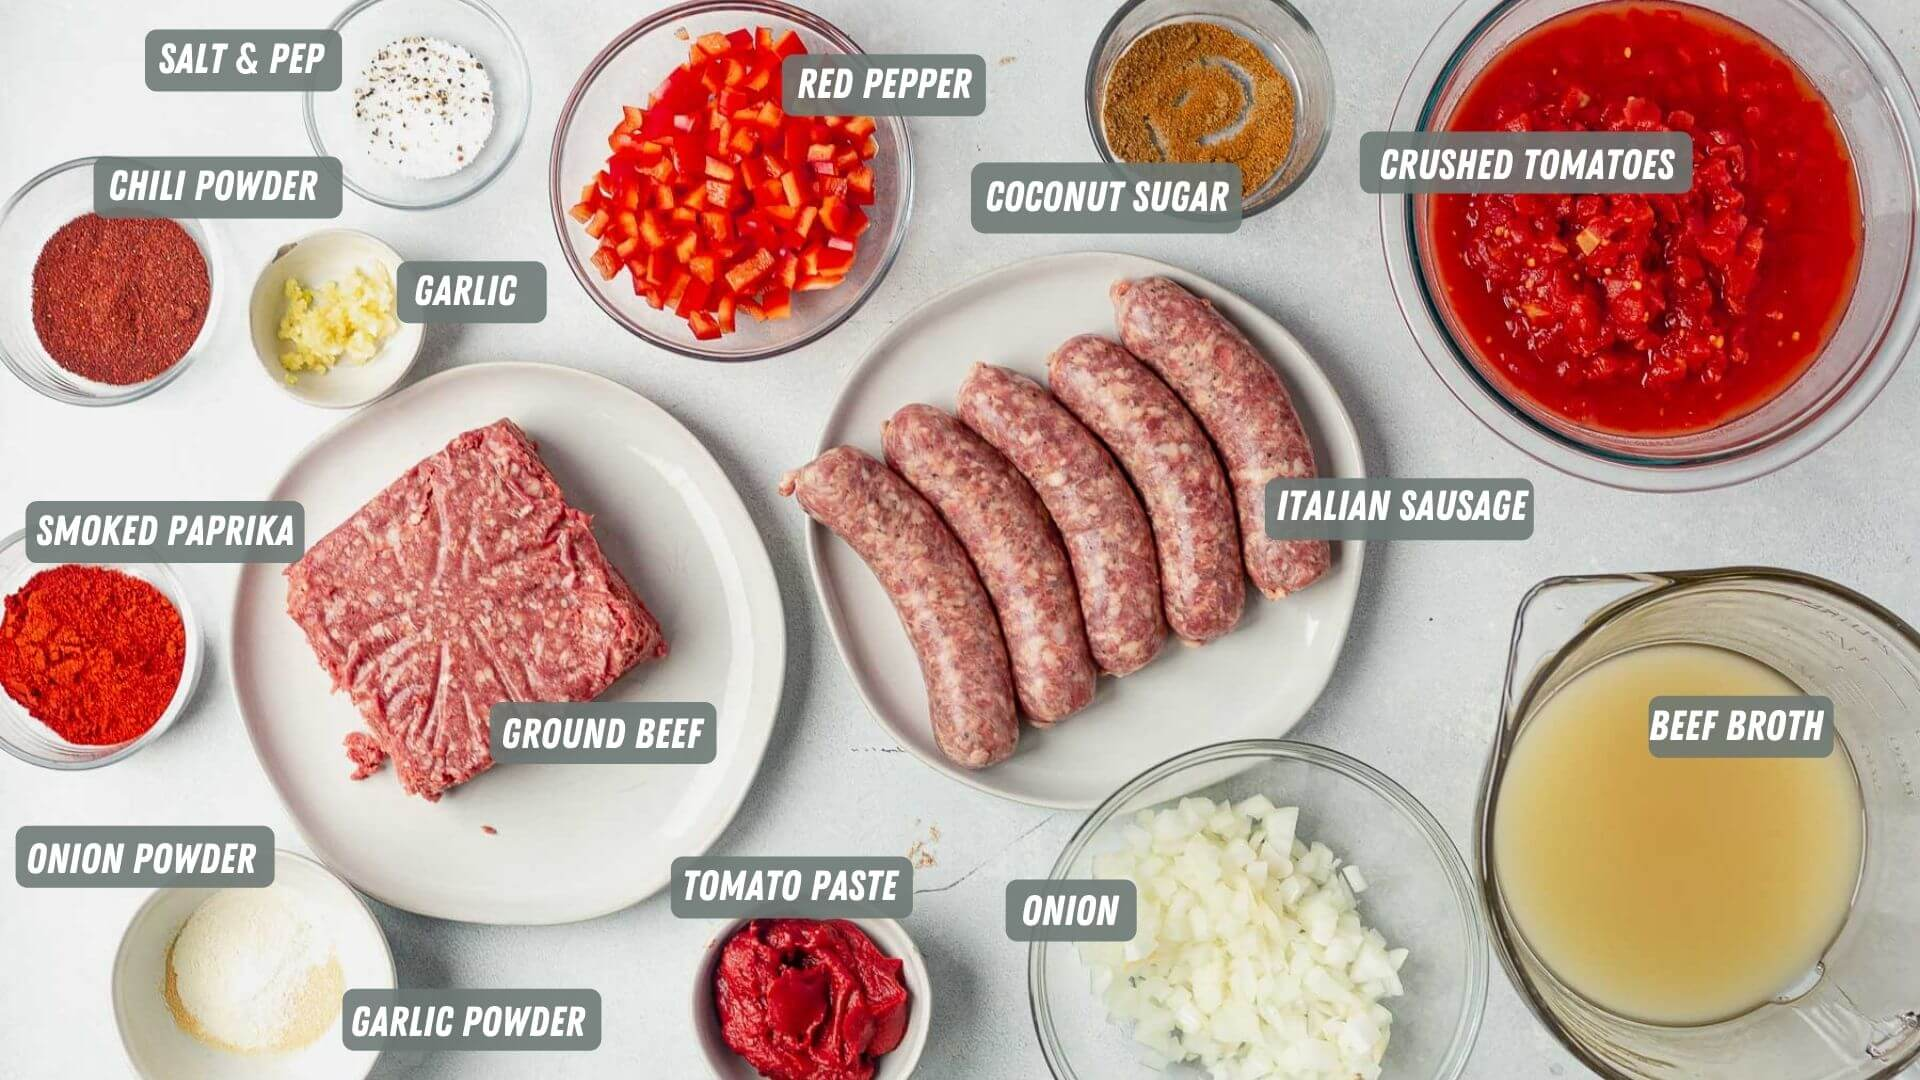 beanless chili ingredients measured out on a white table